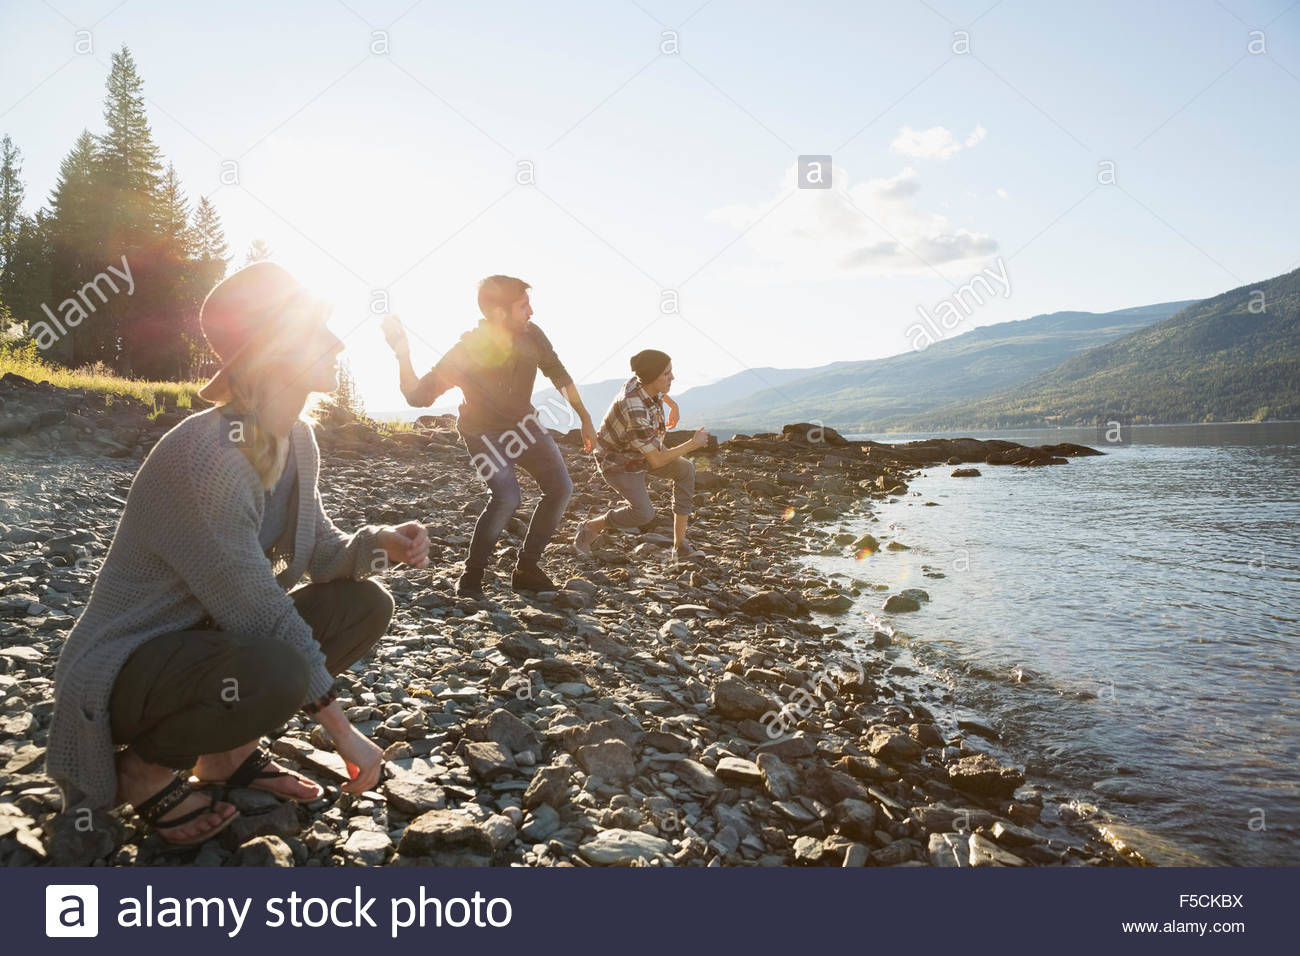 Young friends skipping stones at lakeside - Stock Image